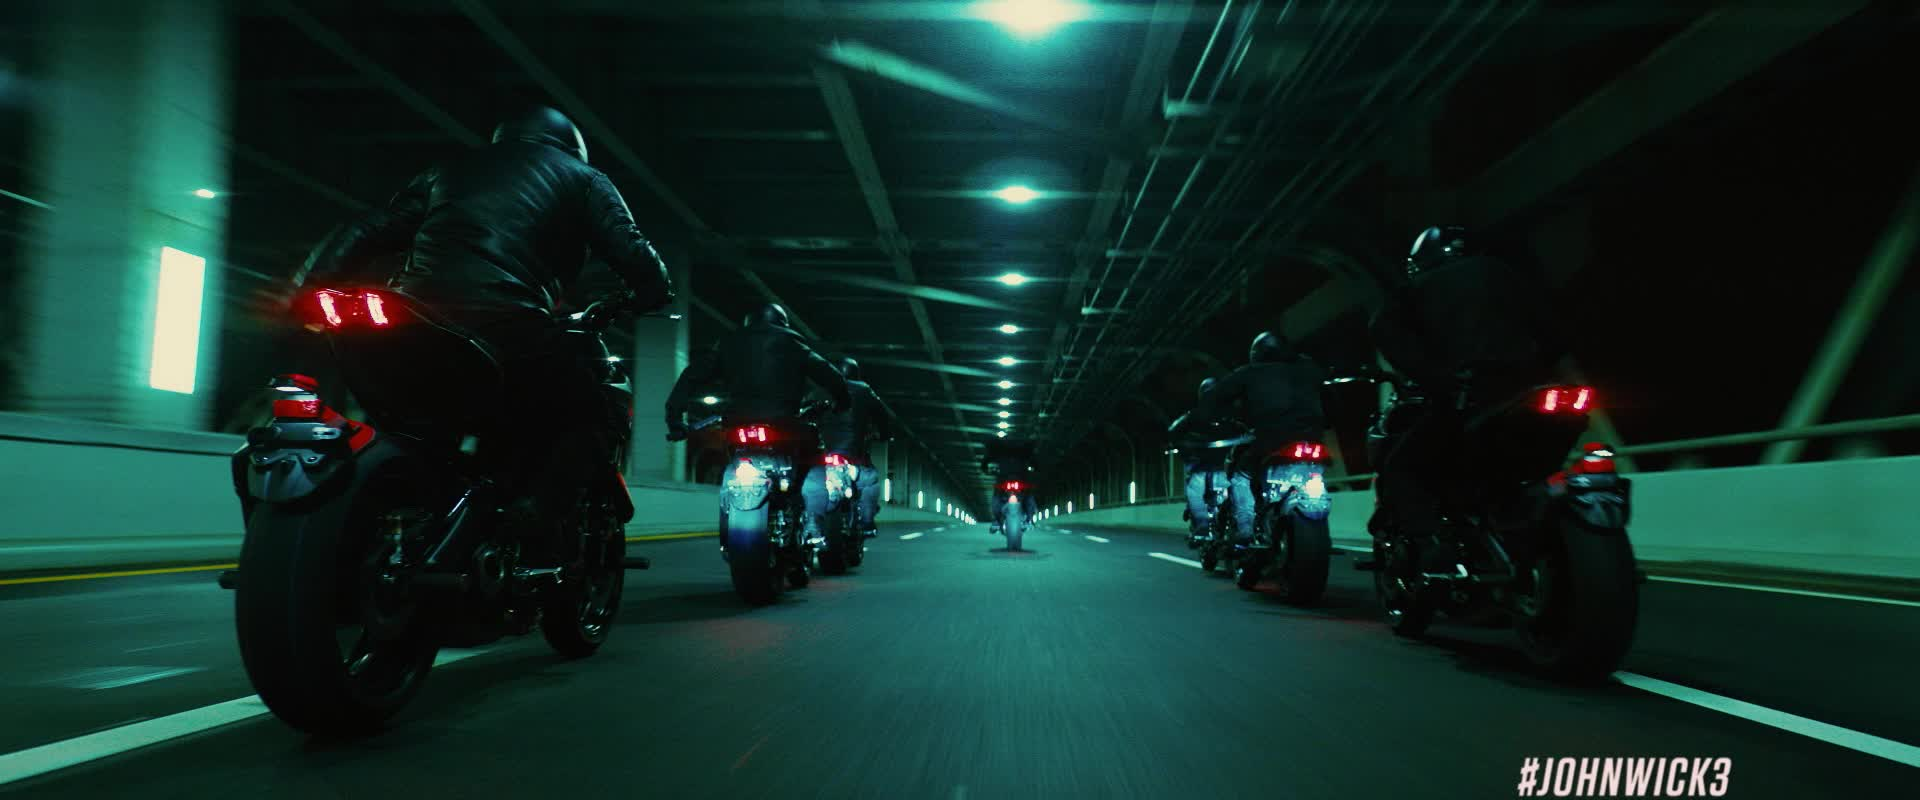 fight, john wick, john wick 3, john wick chapter 3, john wick chapter 3 parabellum, keanu reeves, motorcycle, John Wick Motorcycle Chase Swords GIFs